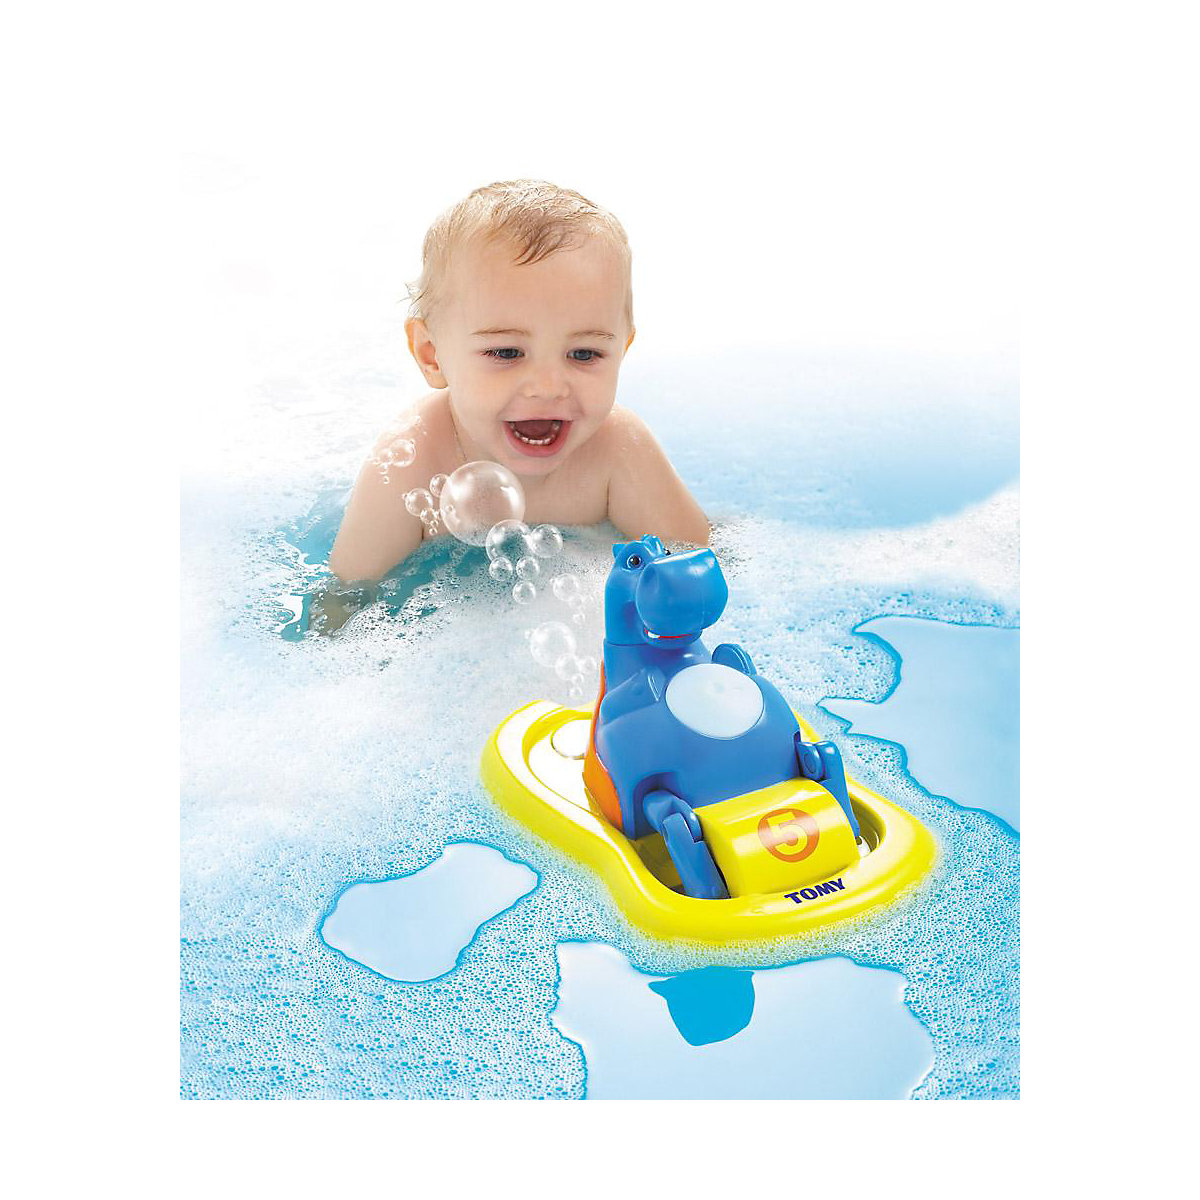 Bath Toy TOMY 1602936 Bathing Bath toys for bathroom on suckers Rubber Duck Doll Kids 13pcs lovely mixed colorful rubber can float on water and sound when squeeze you squeaky bathing toys for children bath duck